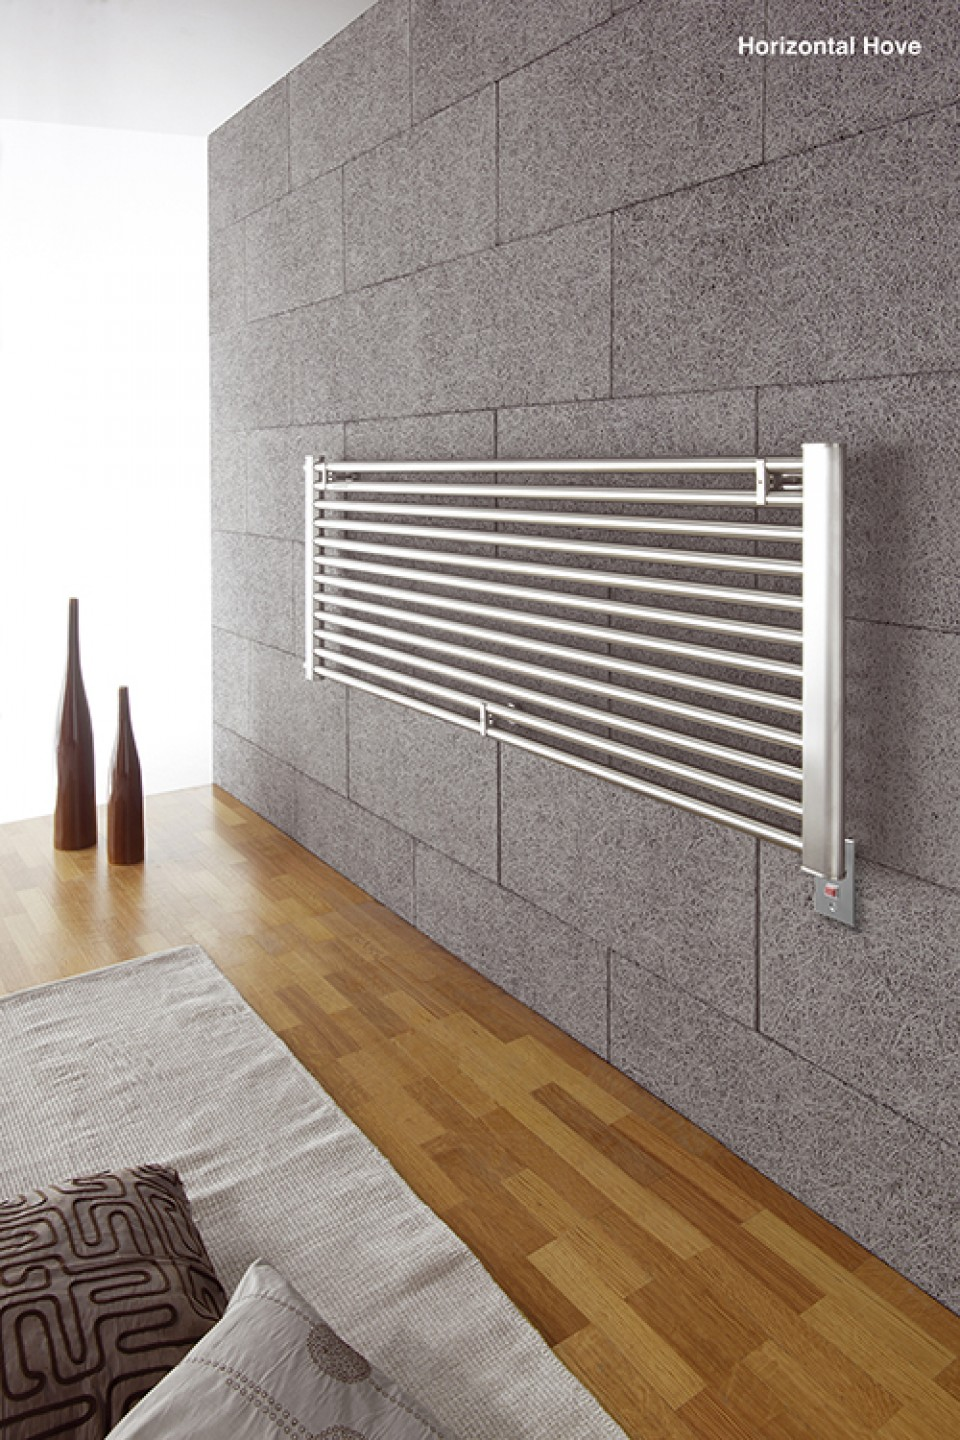 Electric Heated Towel Rack | Towel Rack Warmer | Amba Towel Warmers